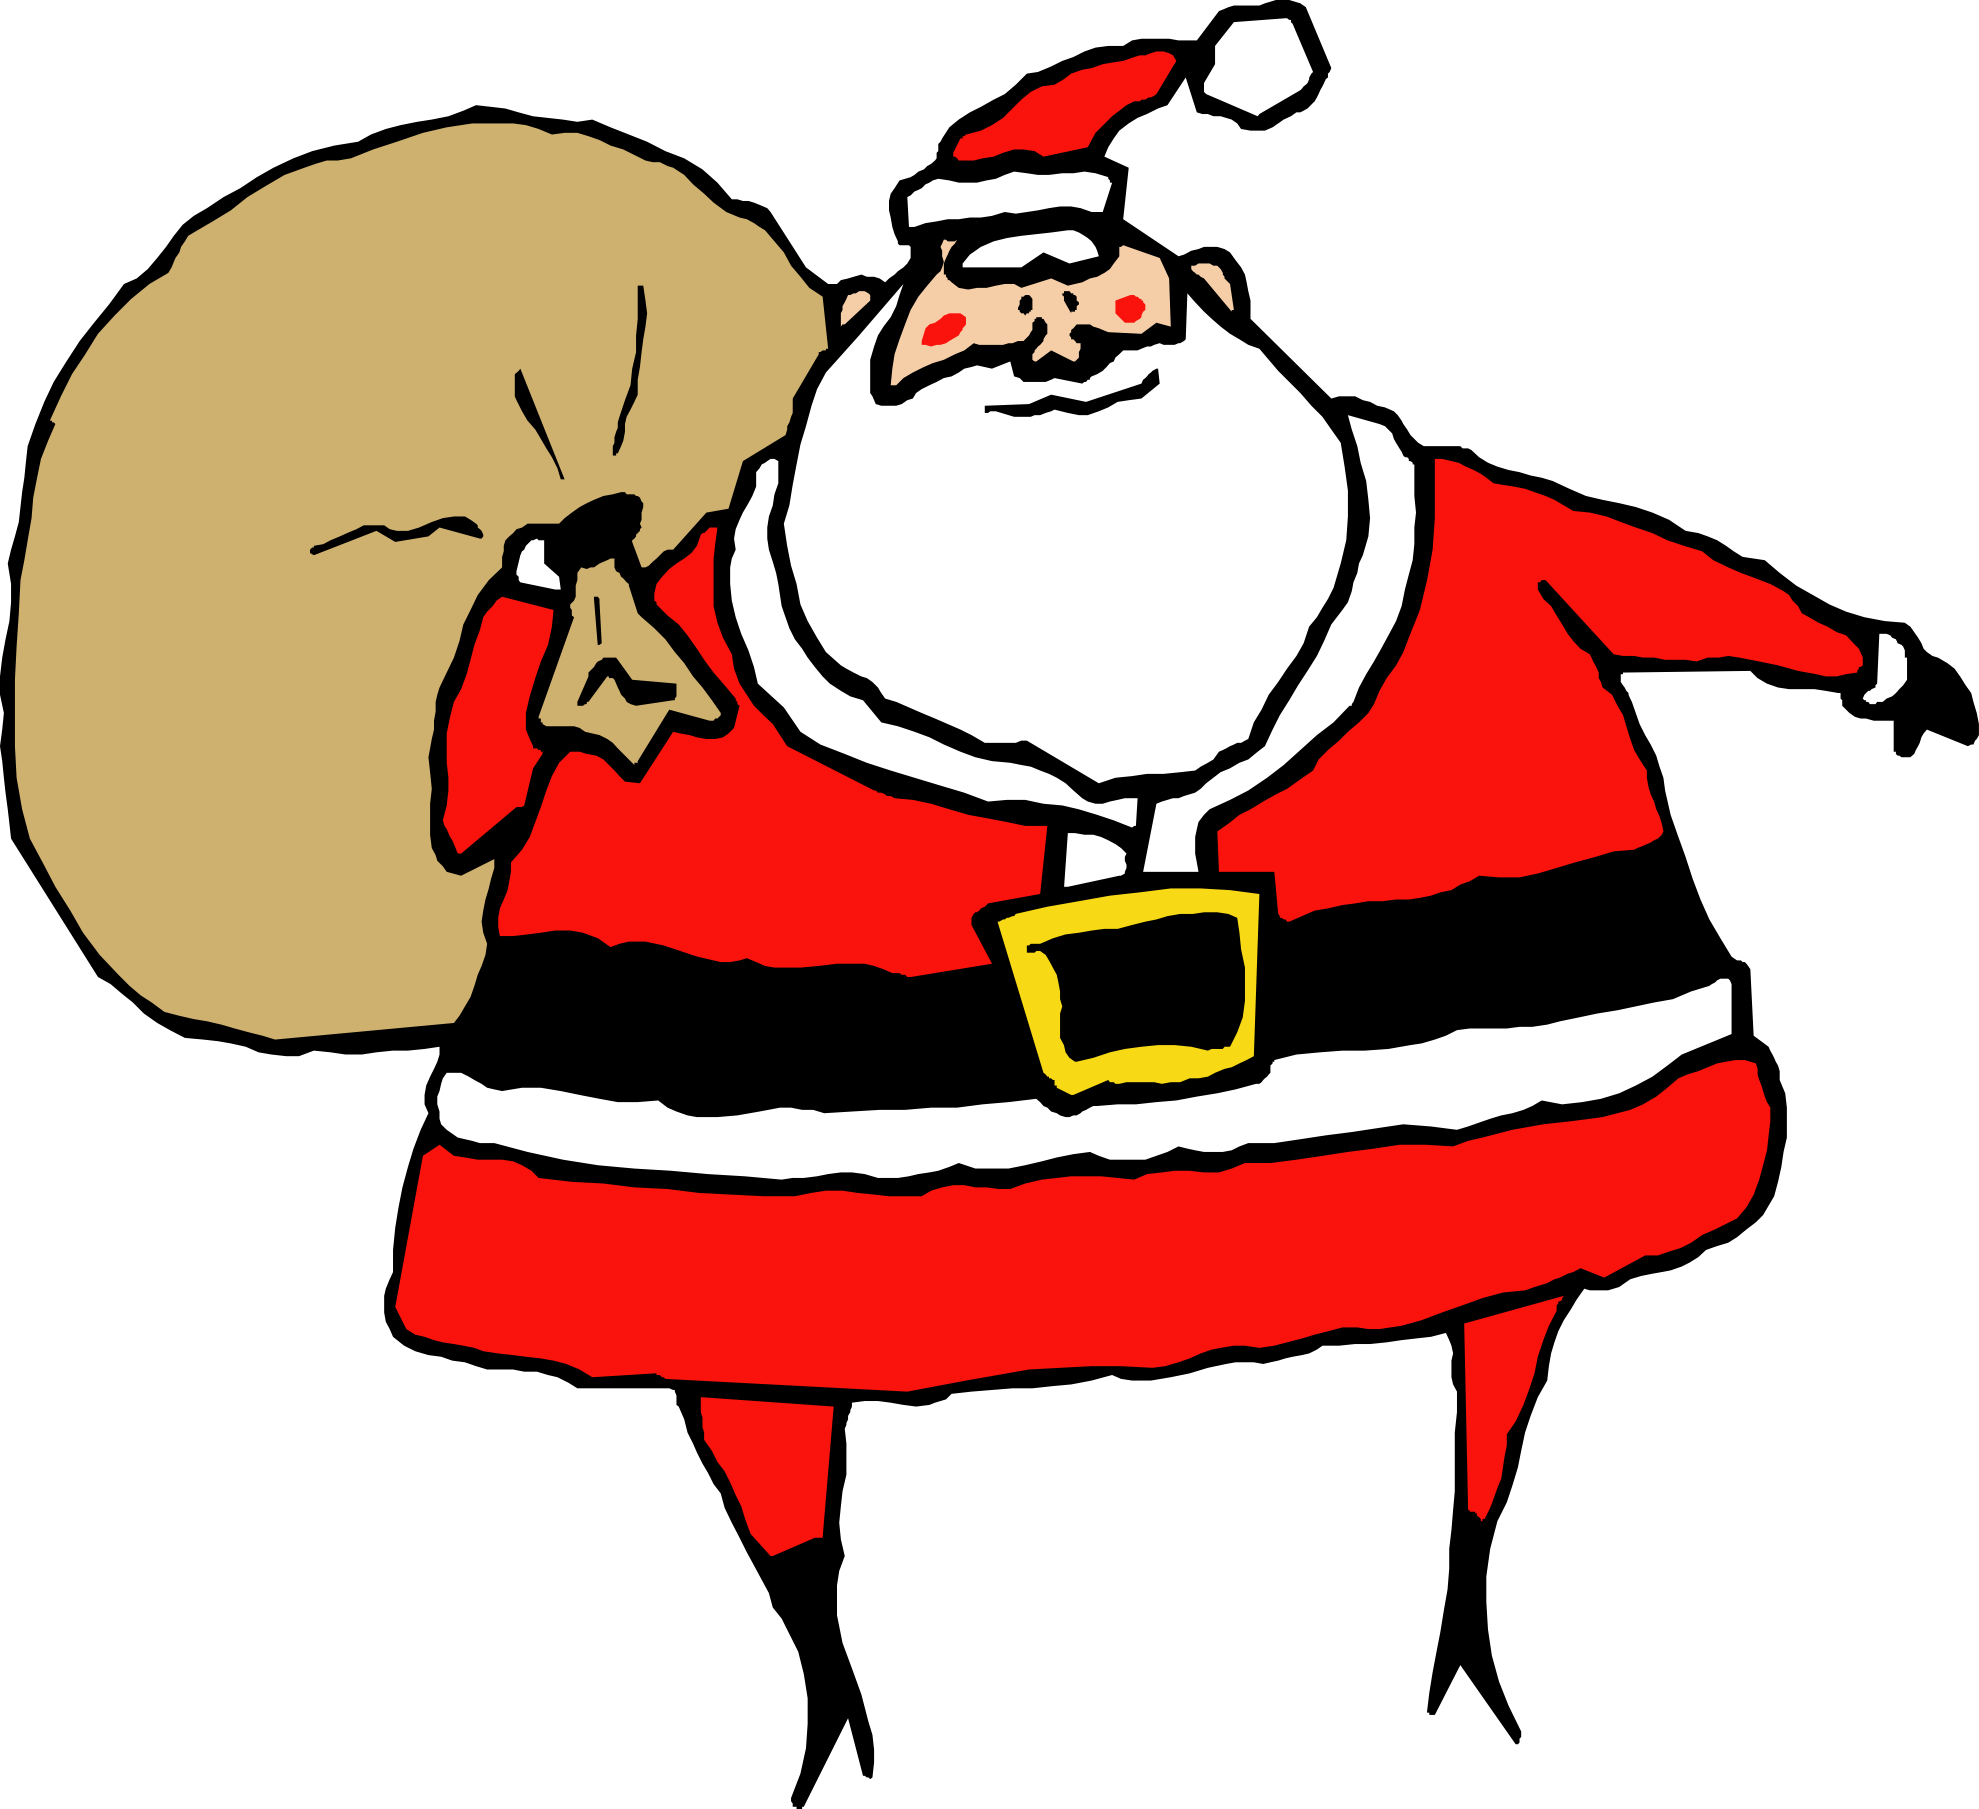 Xmas Stuff For > Christmas Images Clip Art